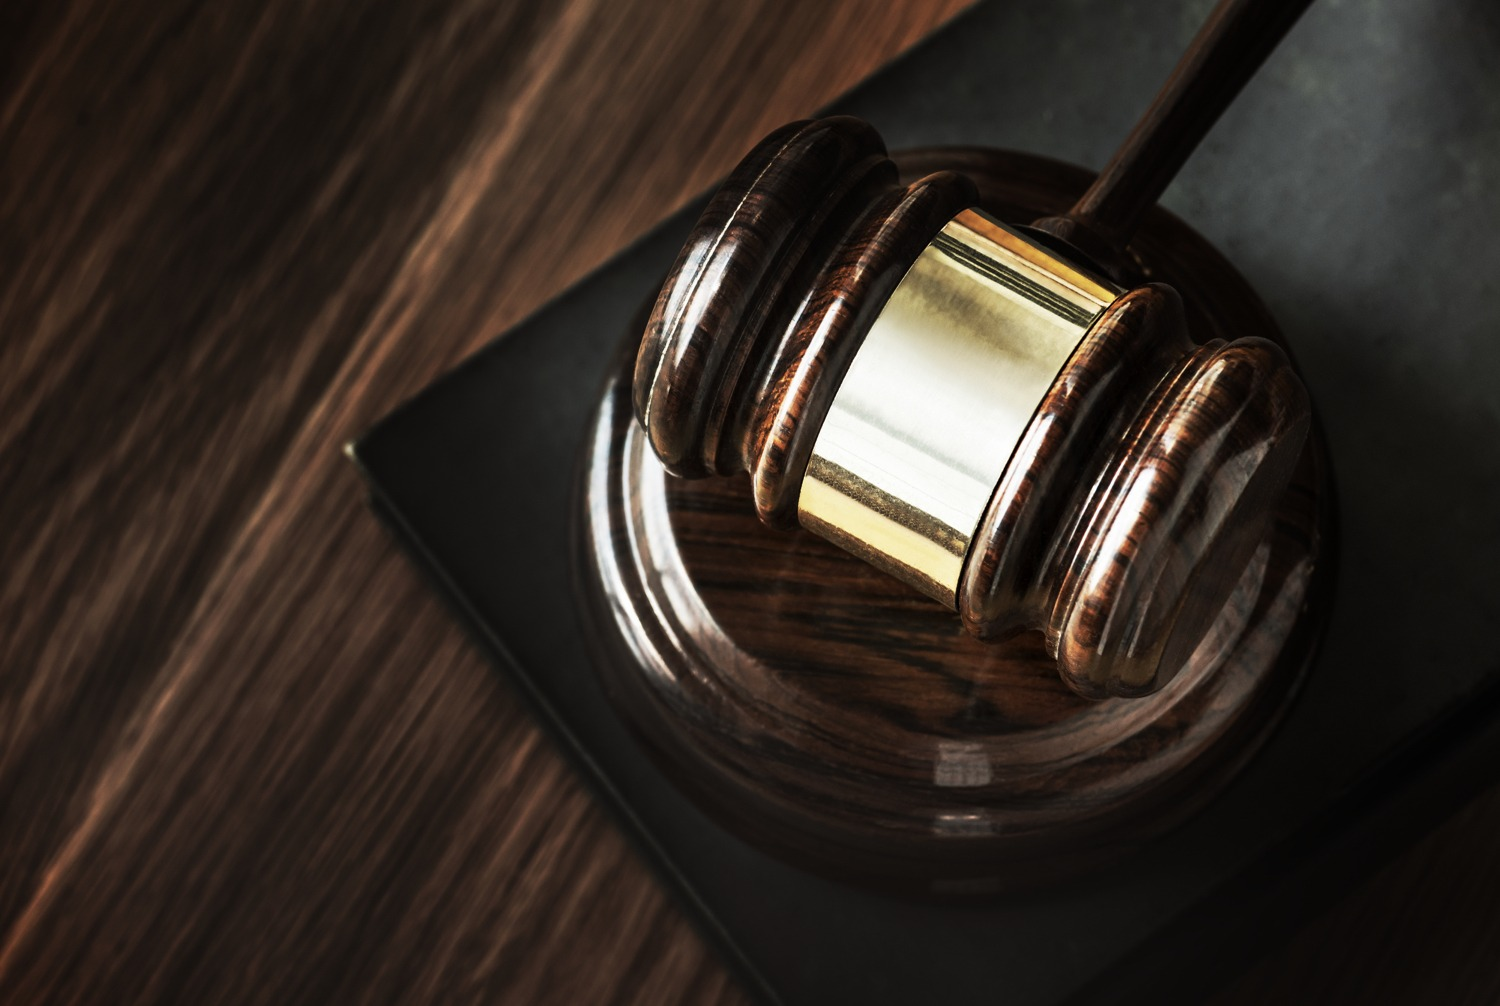 Gavel used in court for probate house sale.